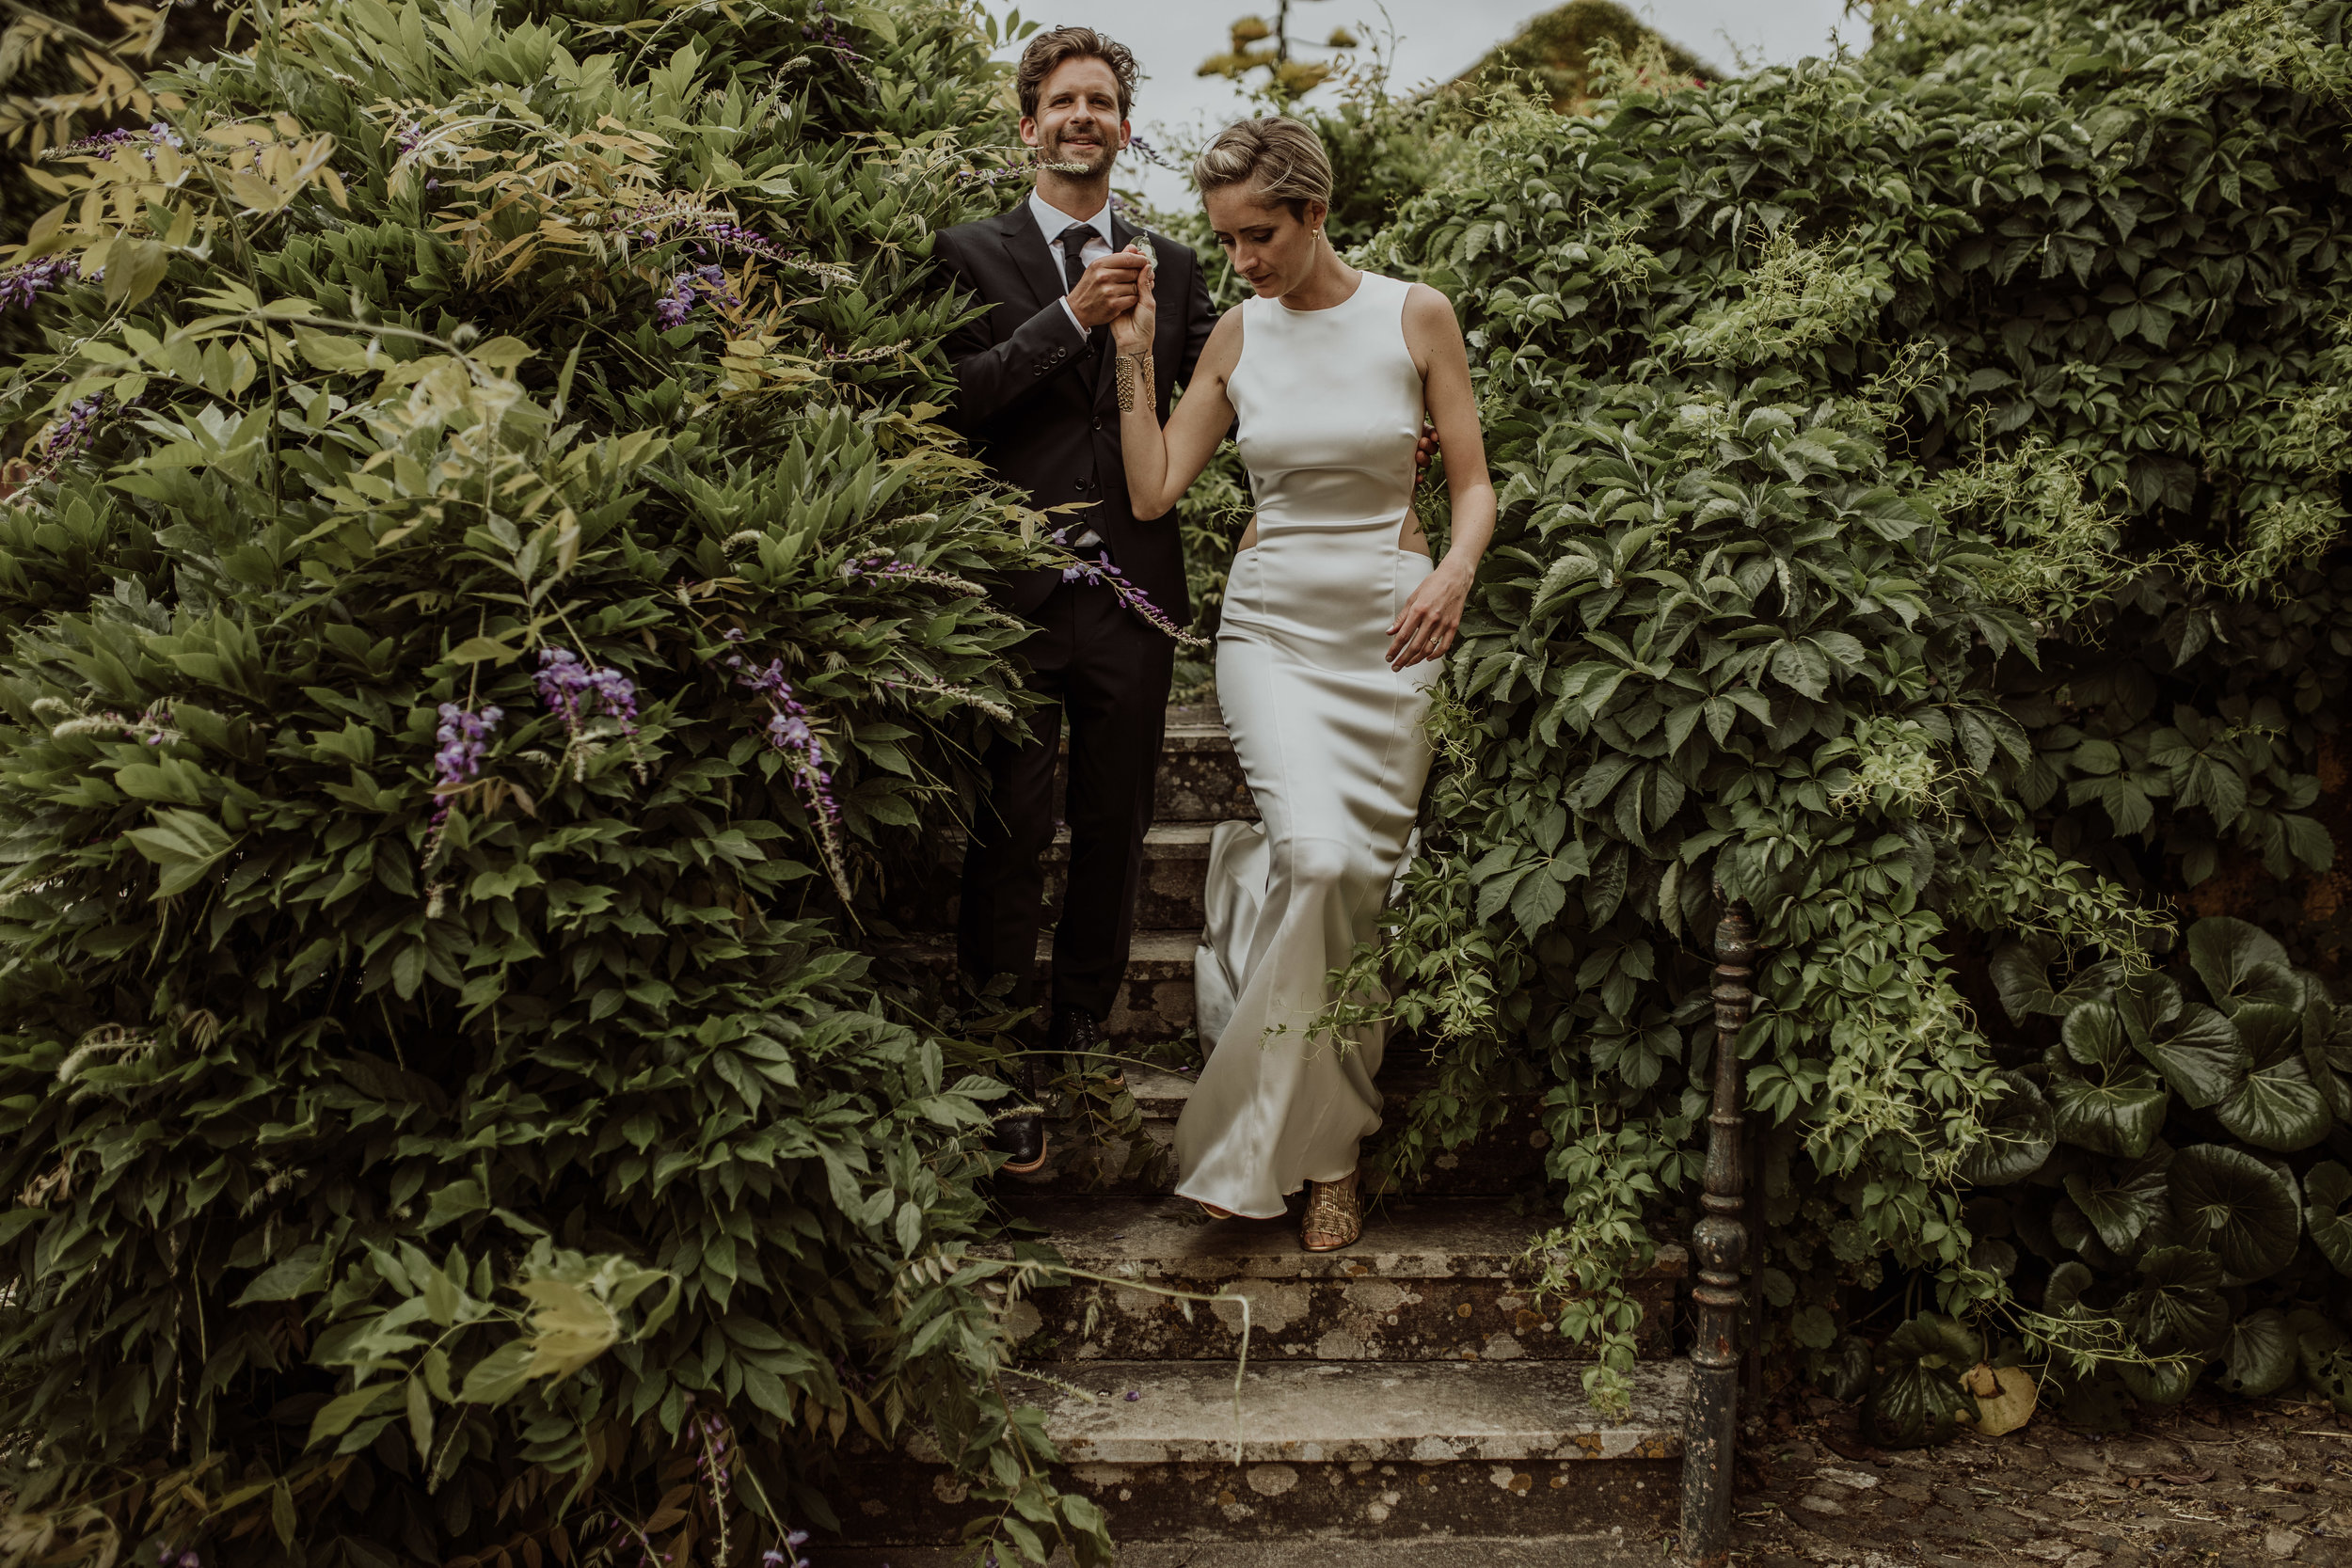 K&W_437_27_May_2019WEDDING.jpg